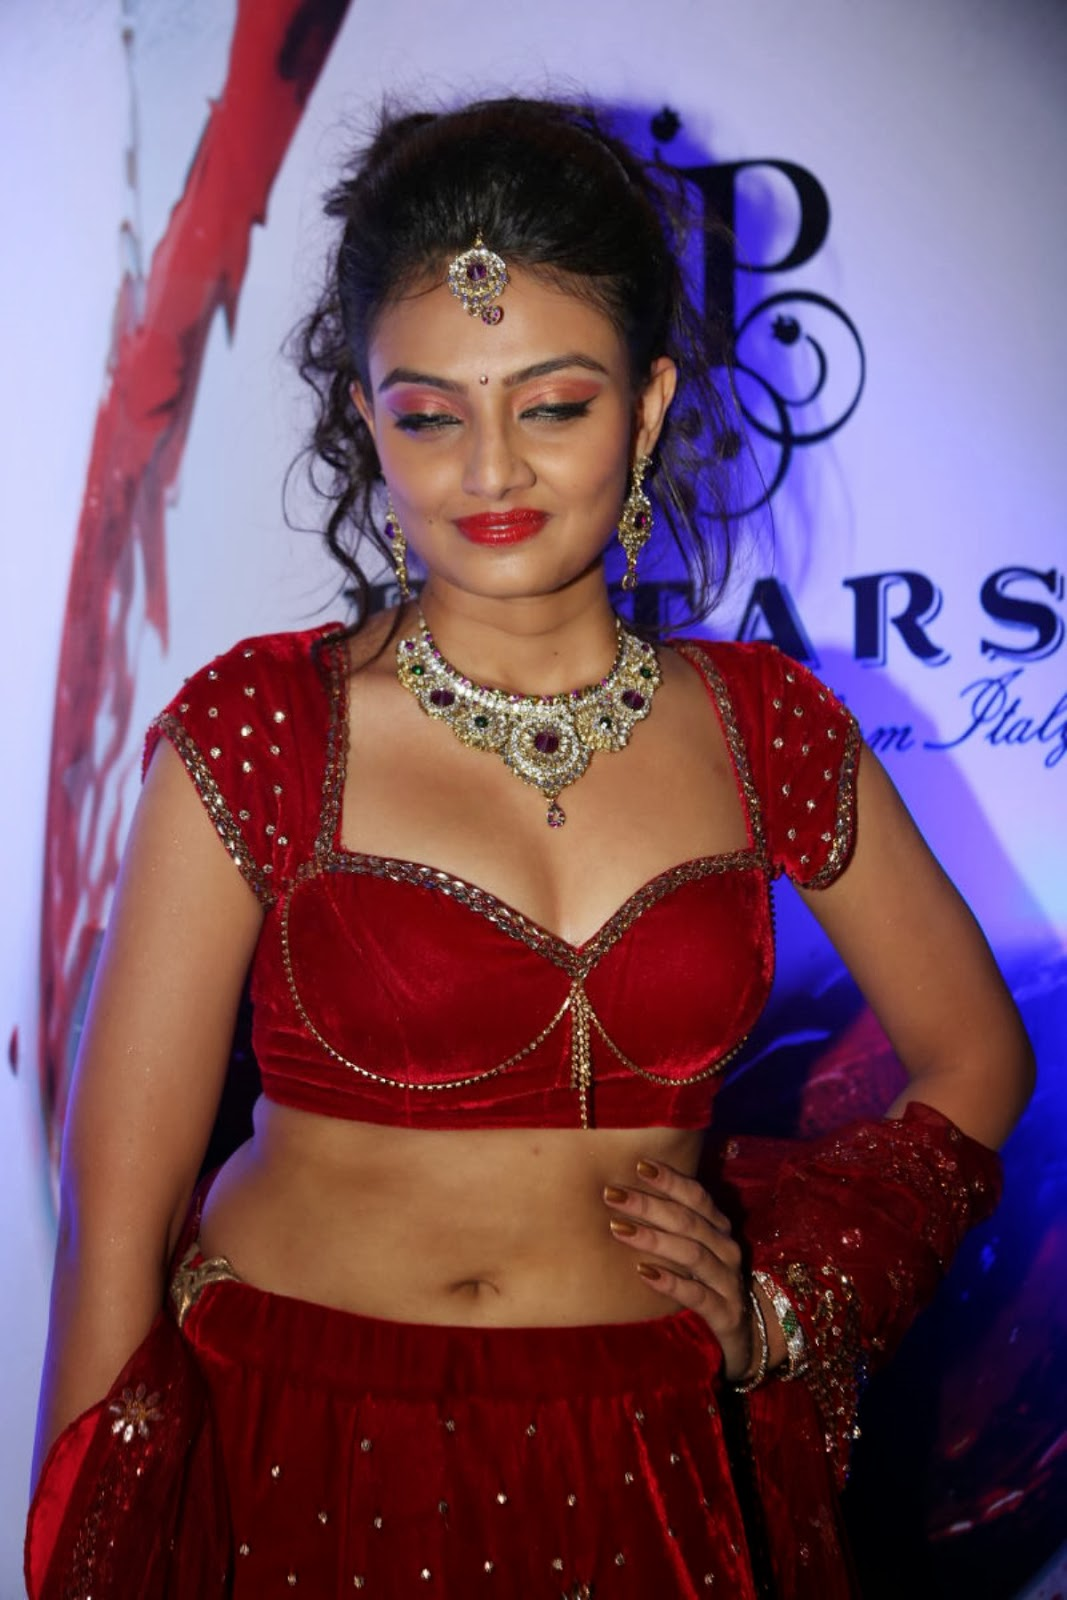 Bollywood, Tollywood, fair, cute, hot sexy actress sizzling, spicy, masala, curvy, pic collection, image gallery